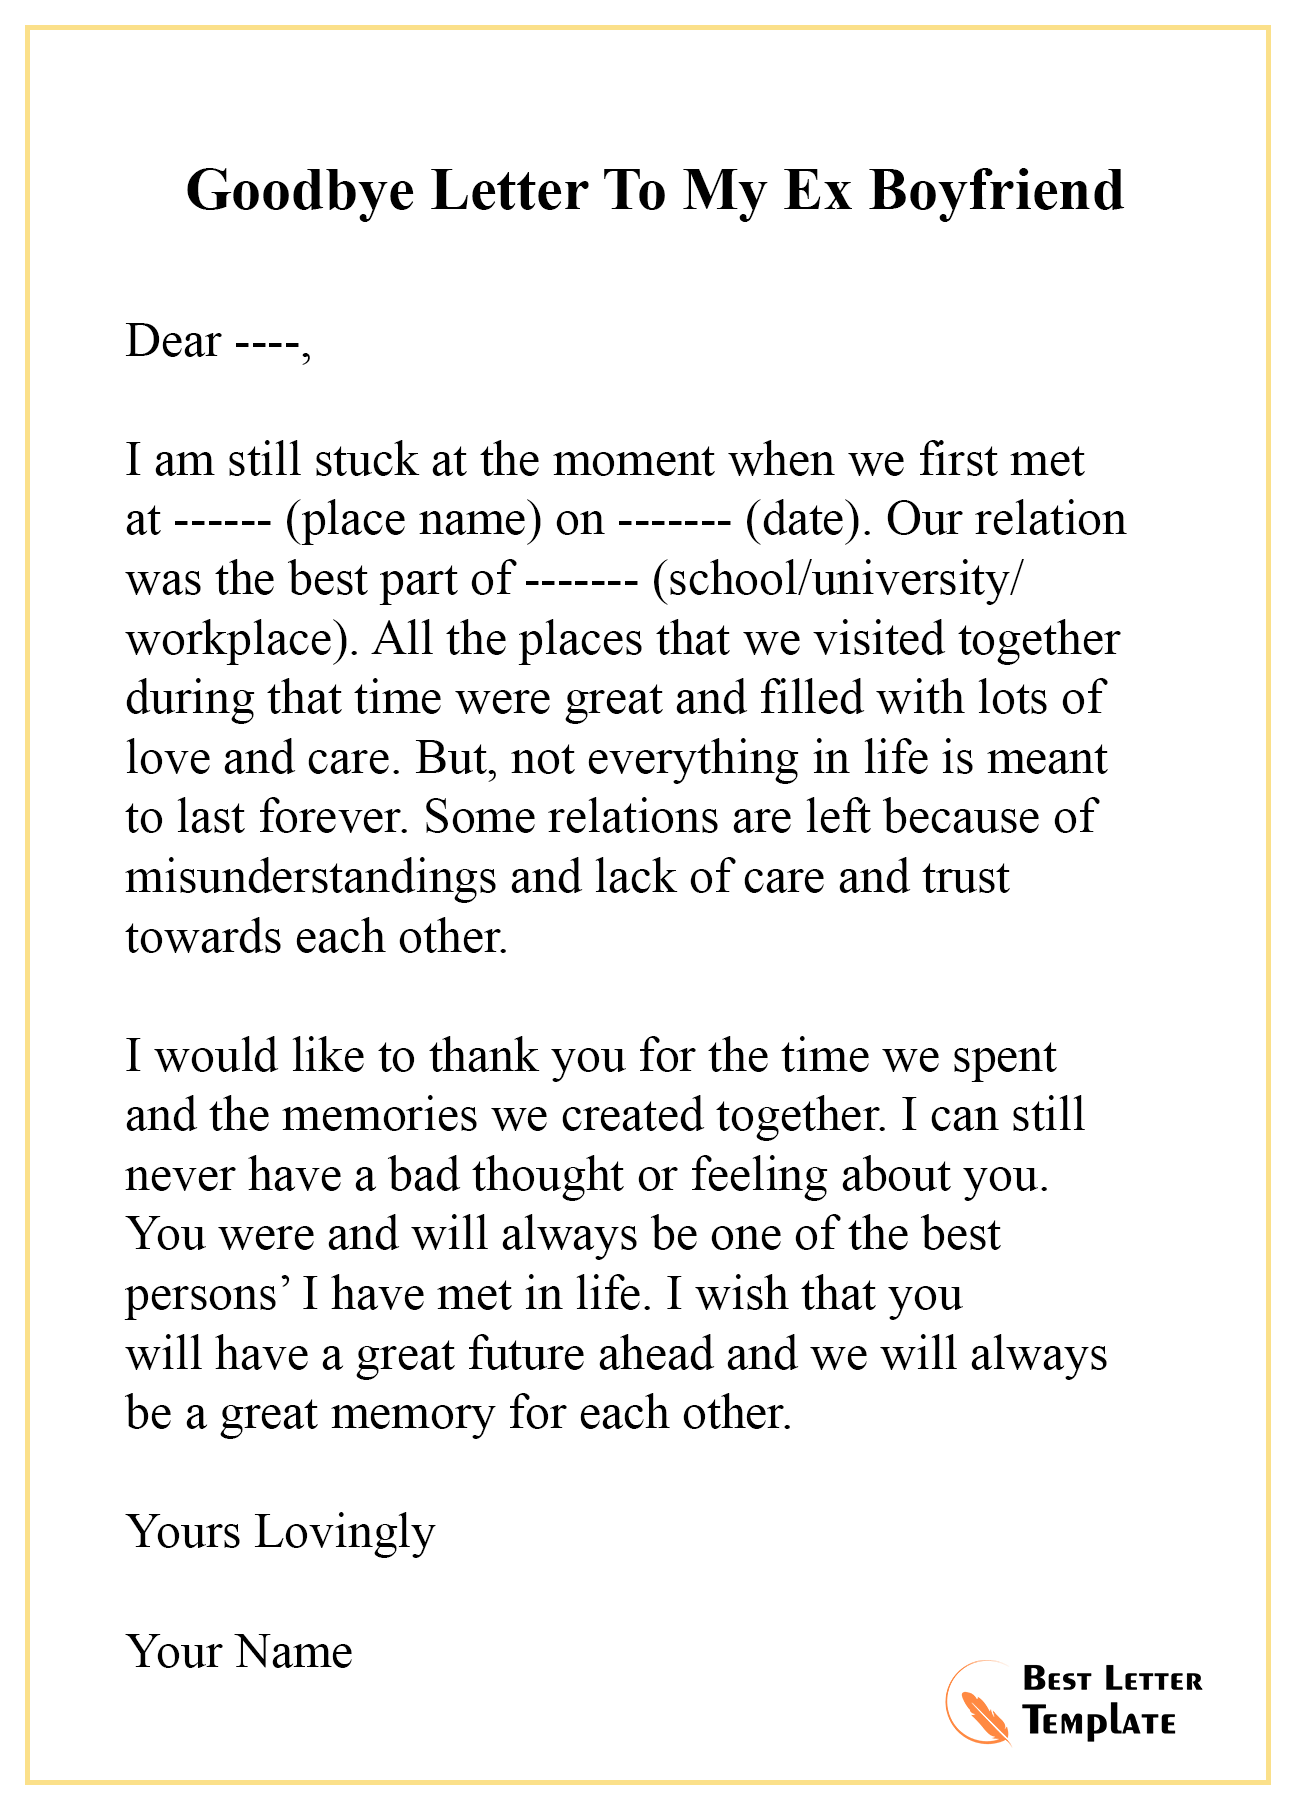 Goodbye-Letter-to-my-Ex-Boyfriend | Best Letter Template